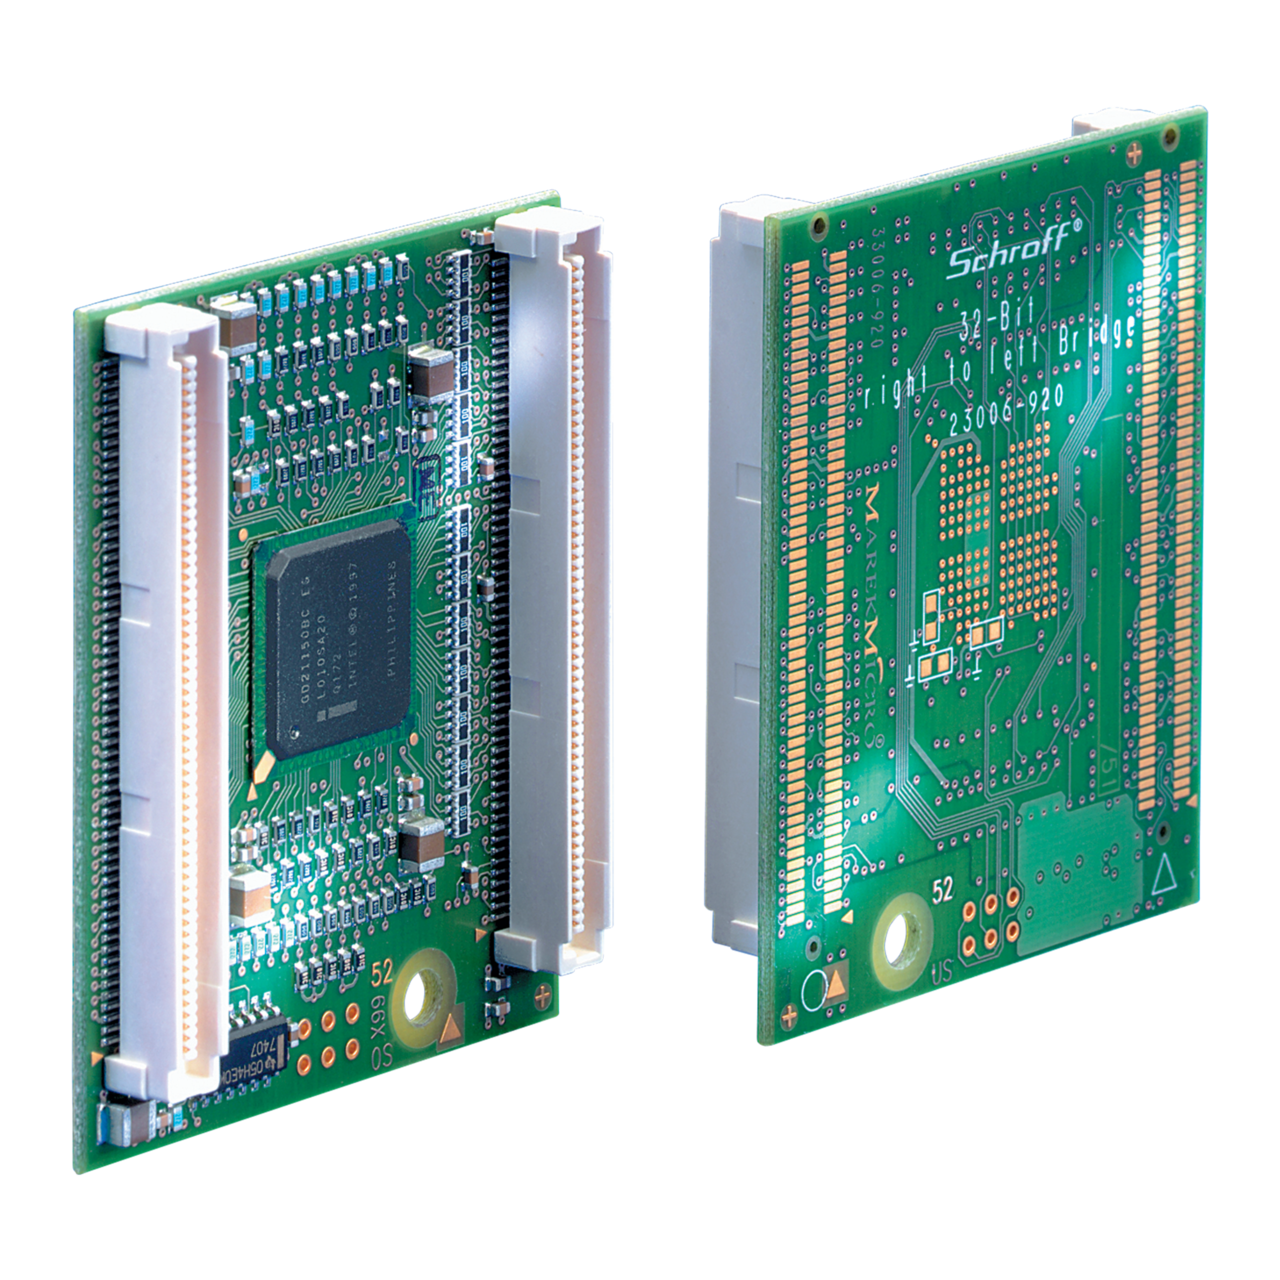 Image for CompactPCI bridge, 32-bit, 33 MHz from nVent SCHROFF | Europe, Middle East, Africa and India